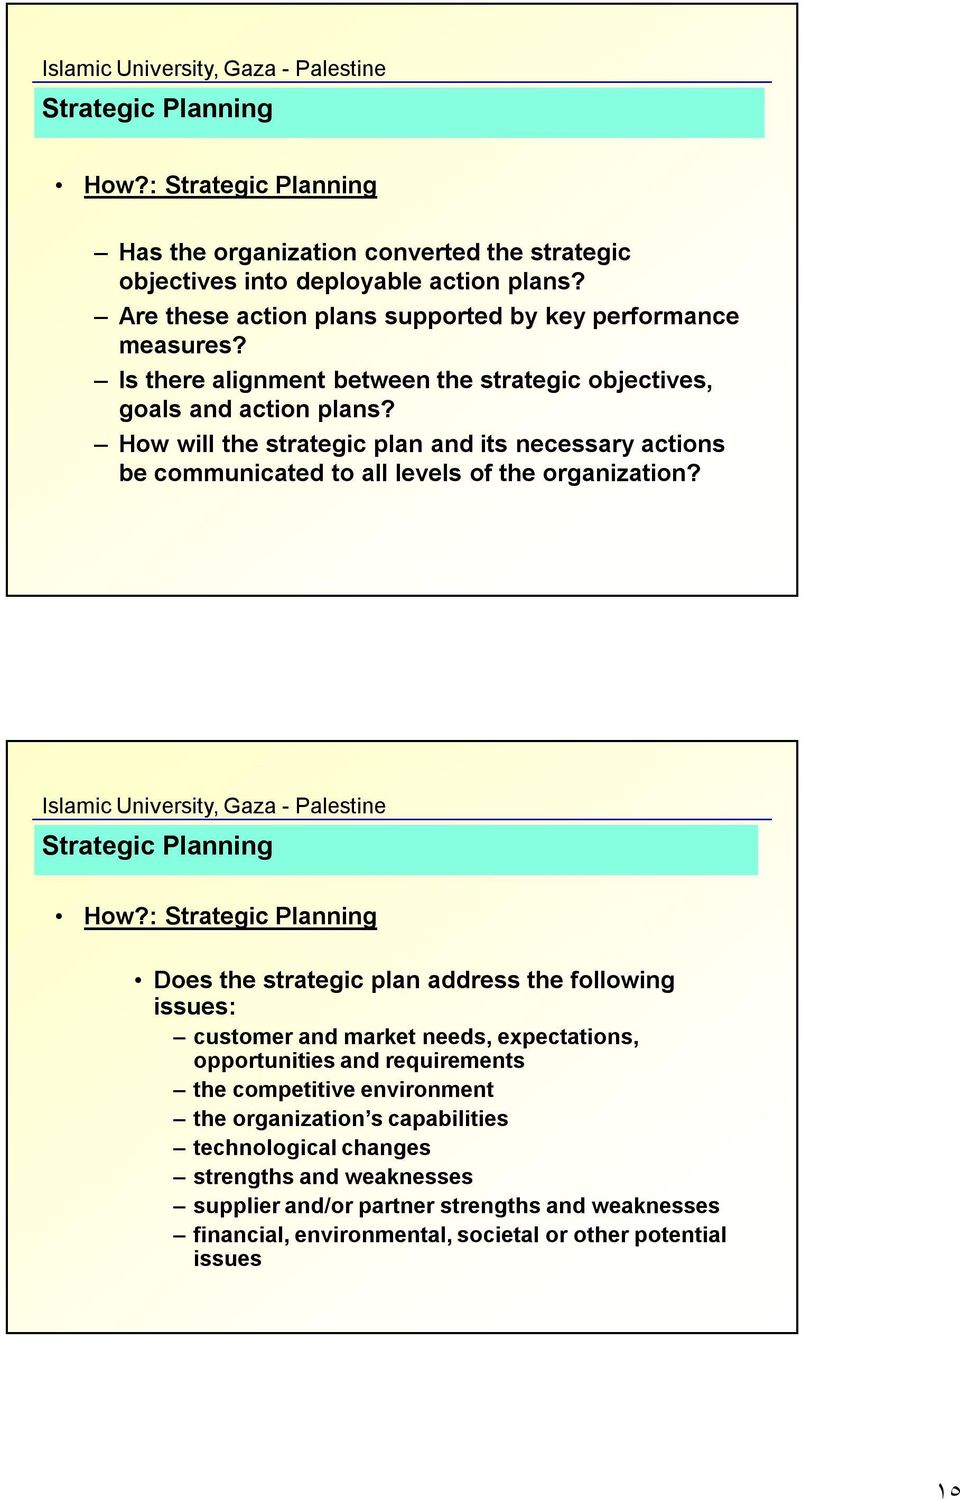 How will the strategic plan and its necessary actions be communicated to all levels of the organization? How?